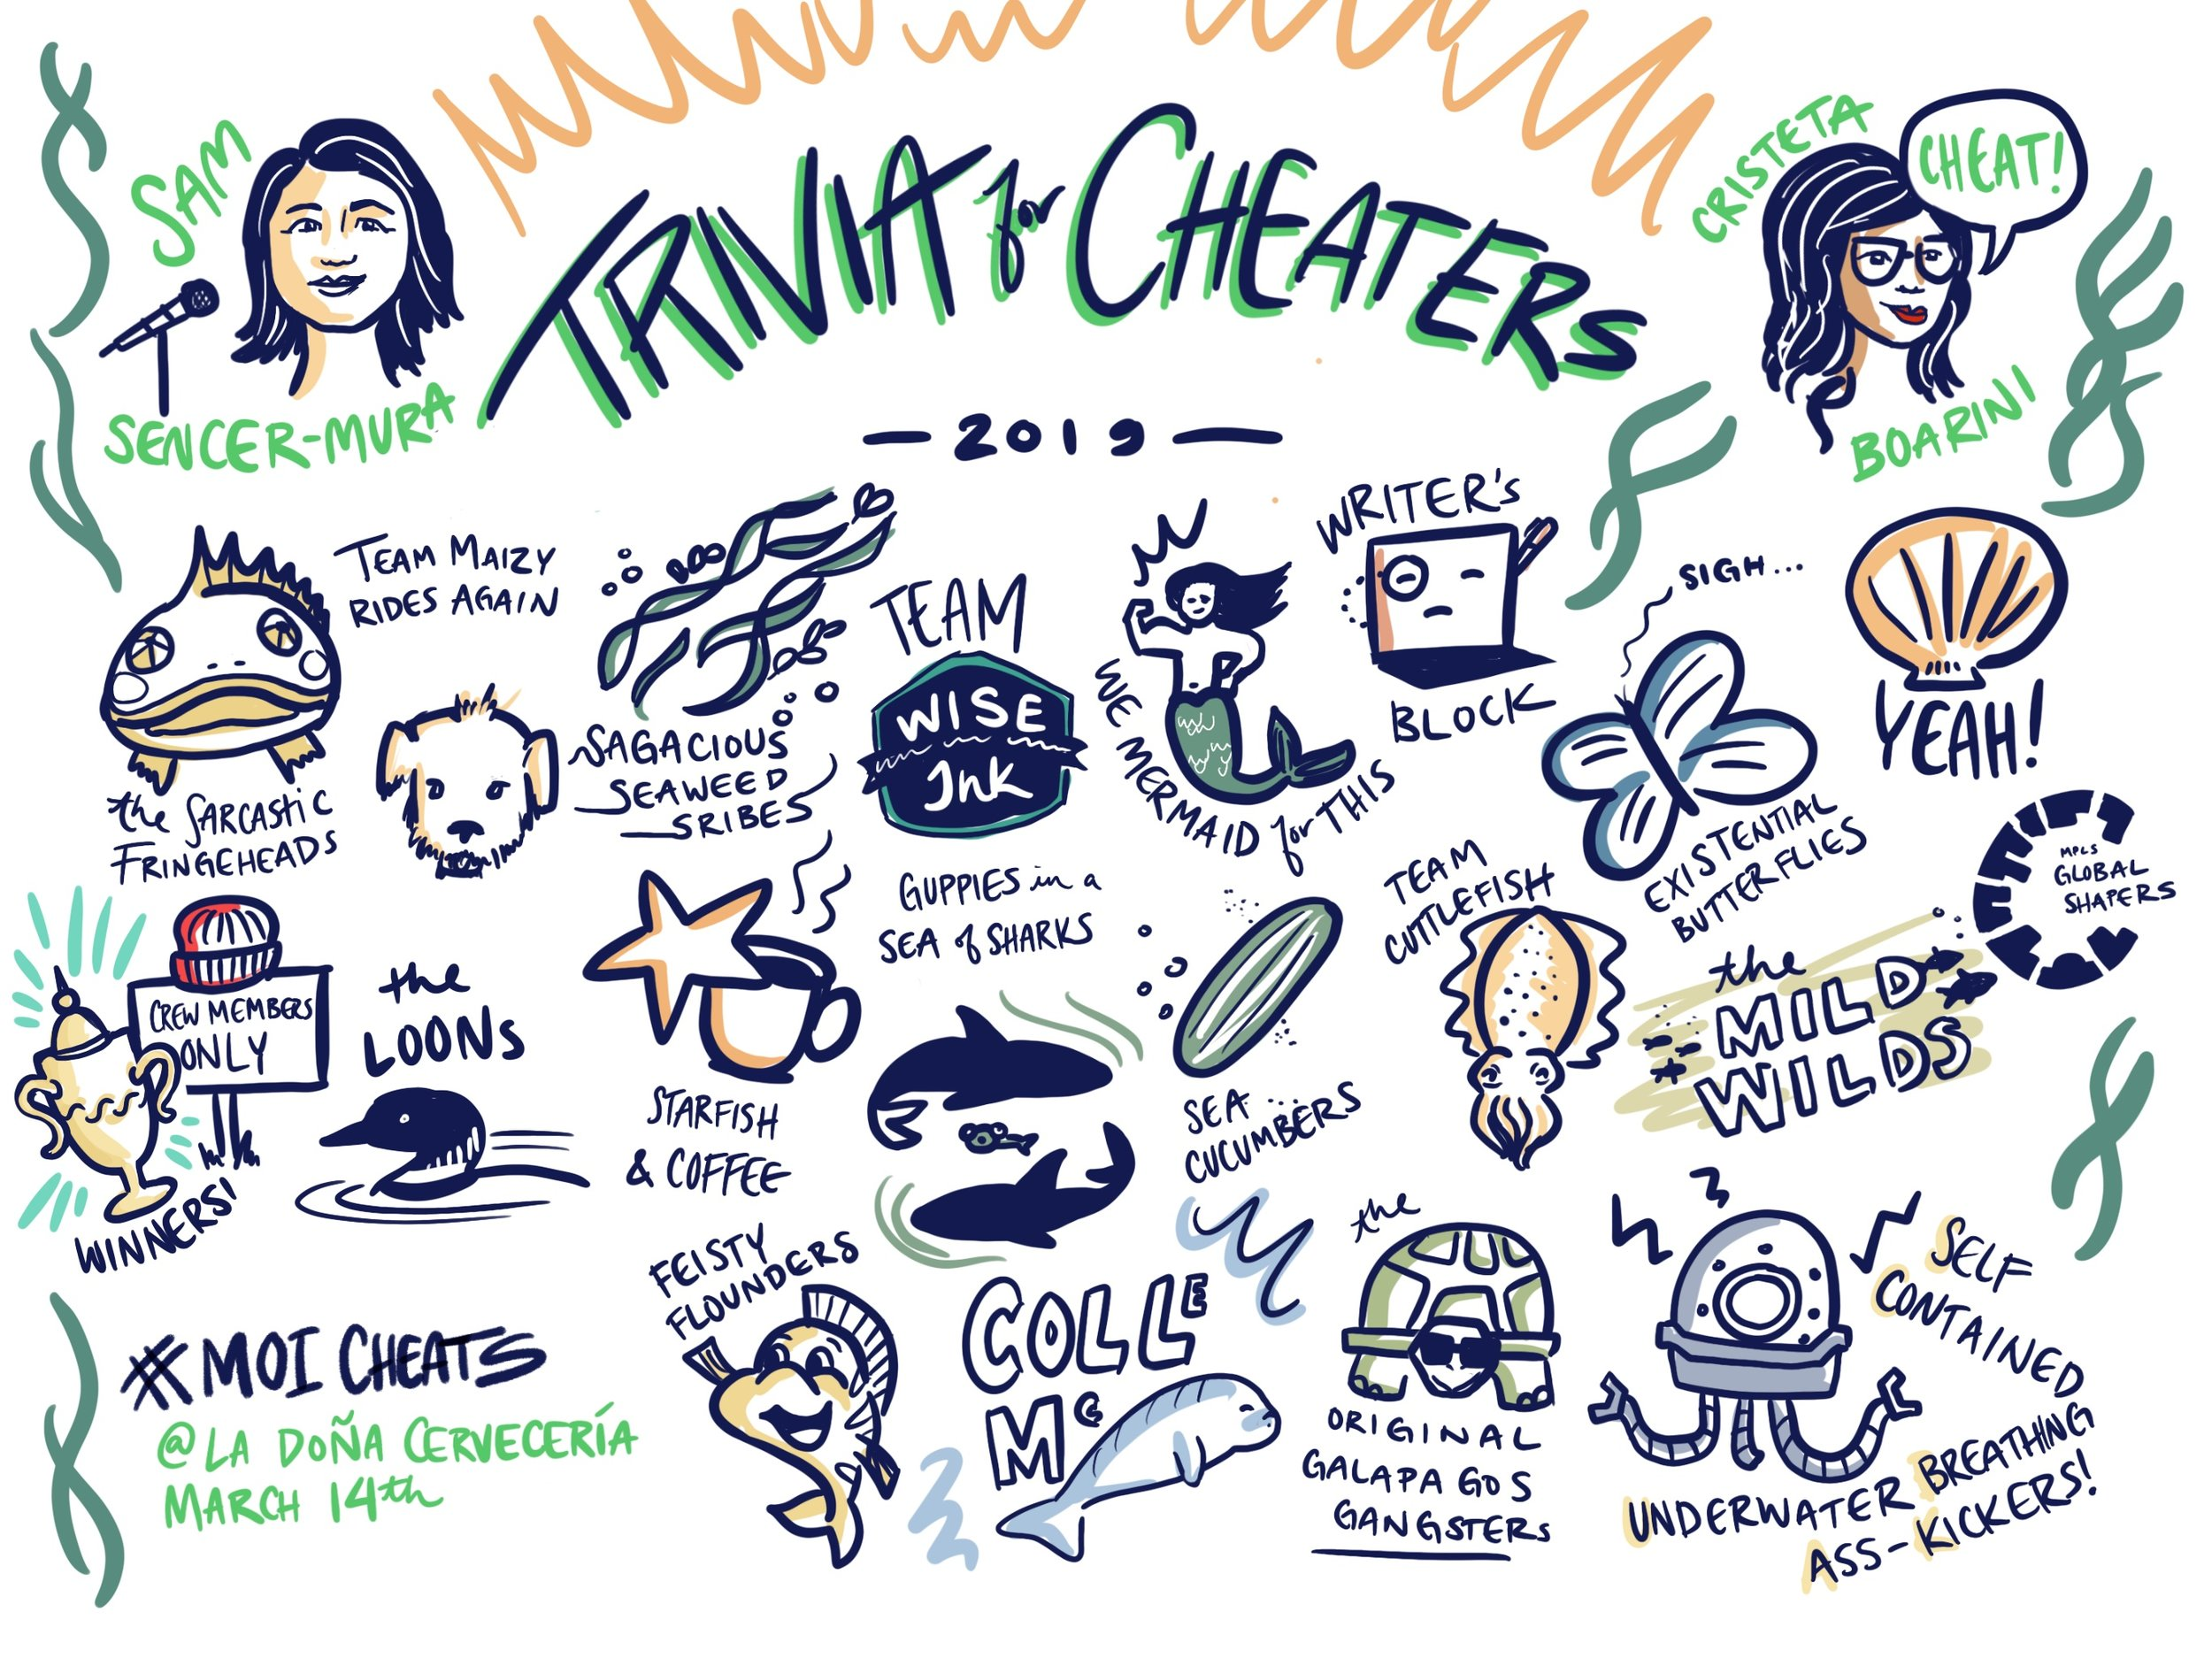 Design live drawn by Cori Lin, featuring all the fin-tastically creative teams who played Trivia for Cheaters! Cori Lin is a South Minneapolis based artist who works for mission-driven organizations and individuals who have stories to tell. We recommend you check out Cori's other amazing projects on her  website .